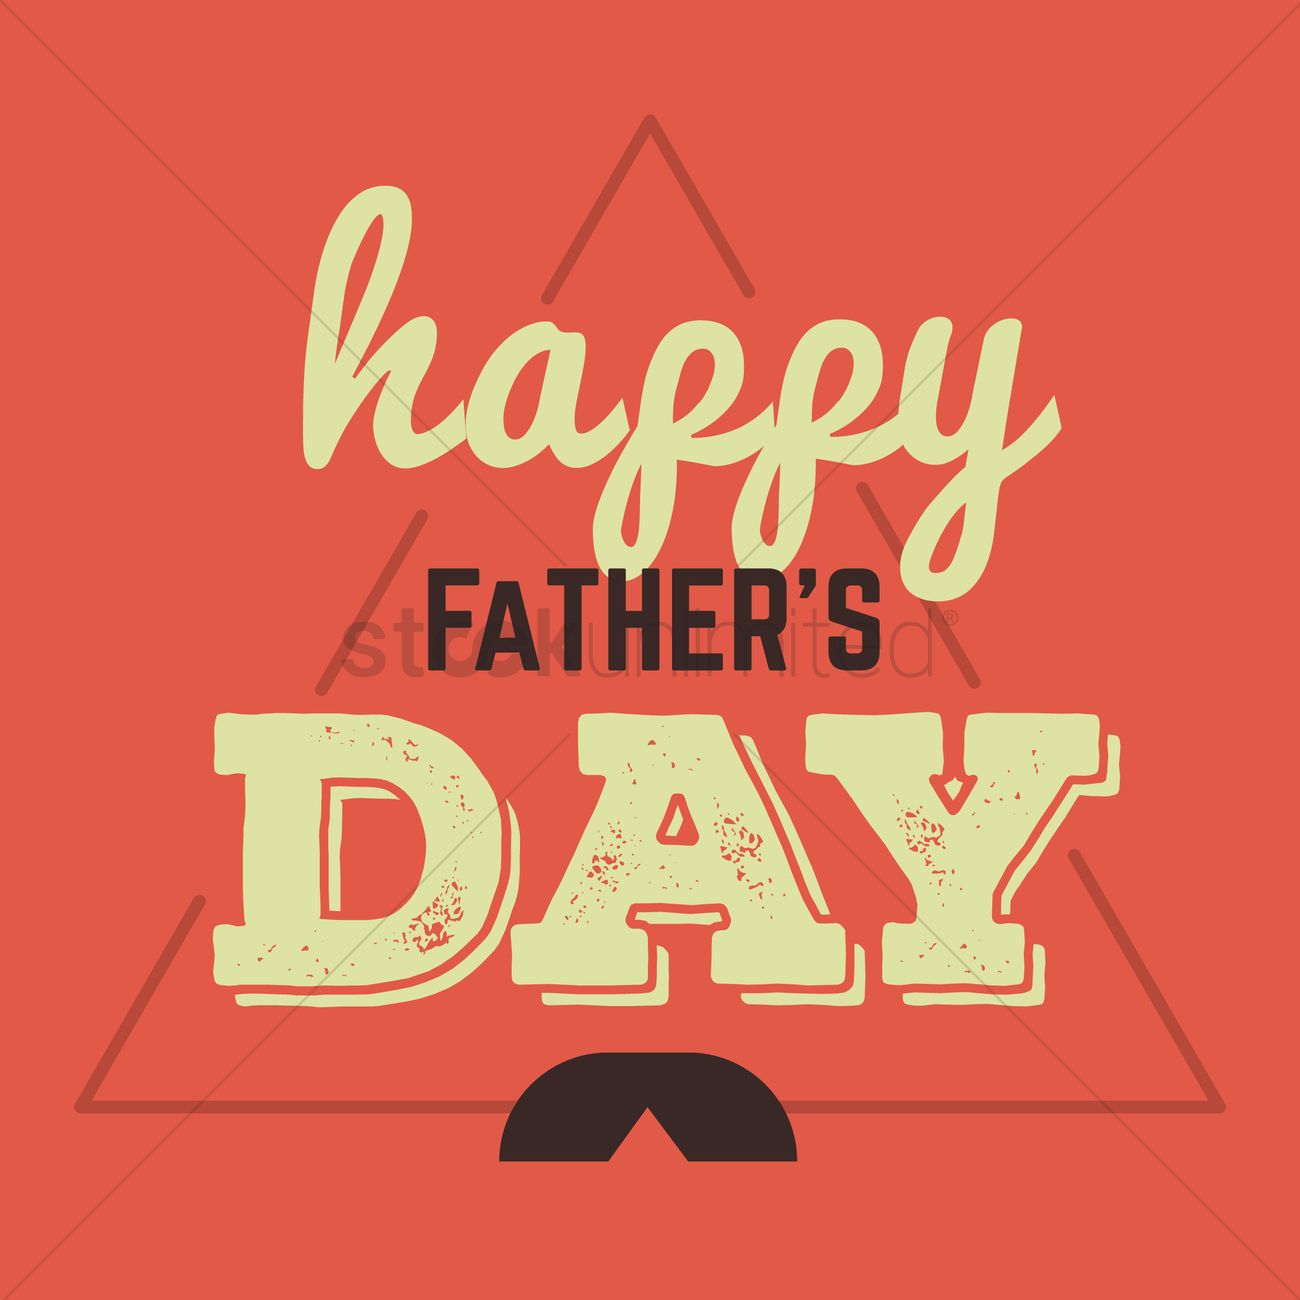 Fathers Day Greeting Card Vector Image 1539867 Stockunlimited